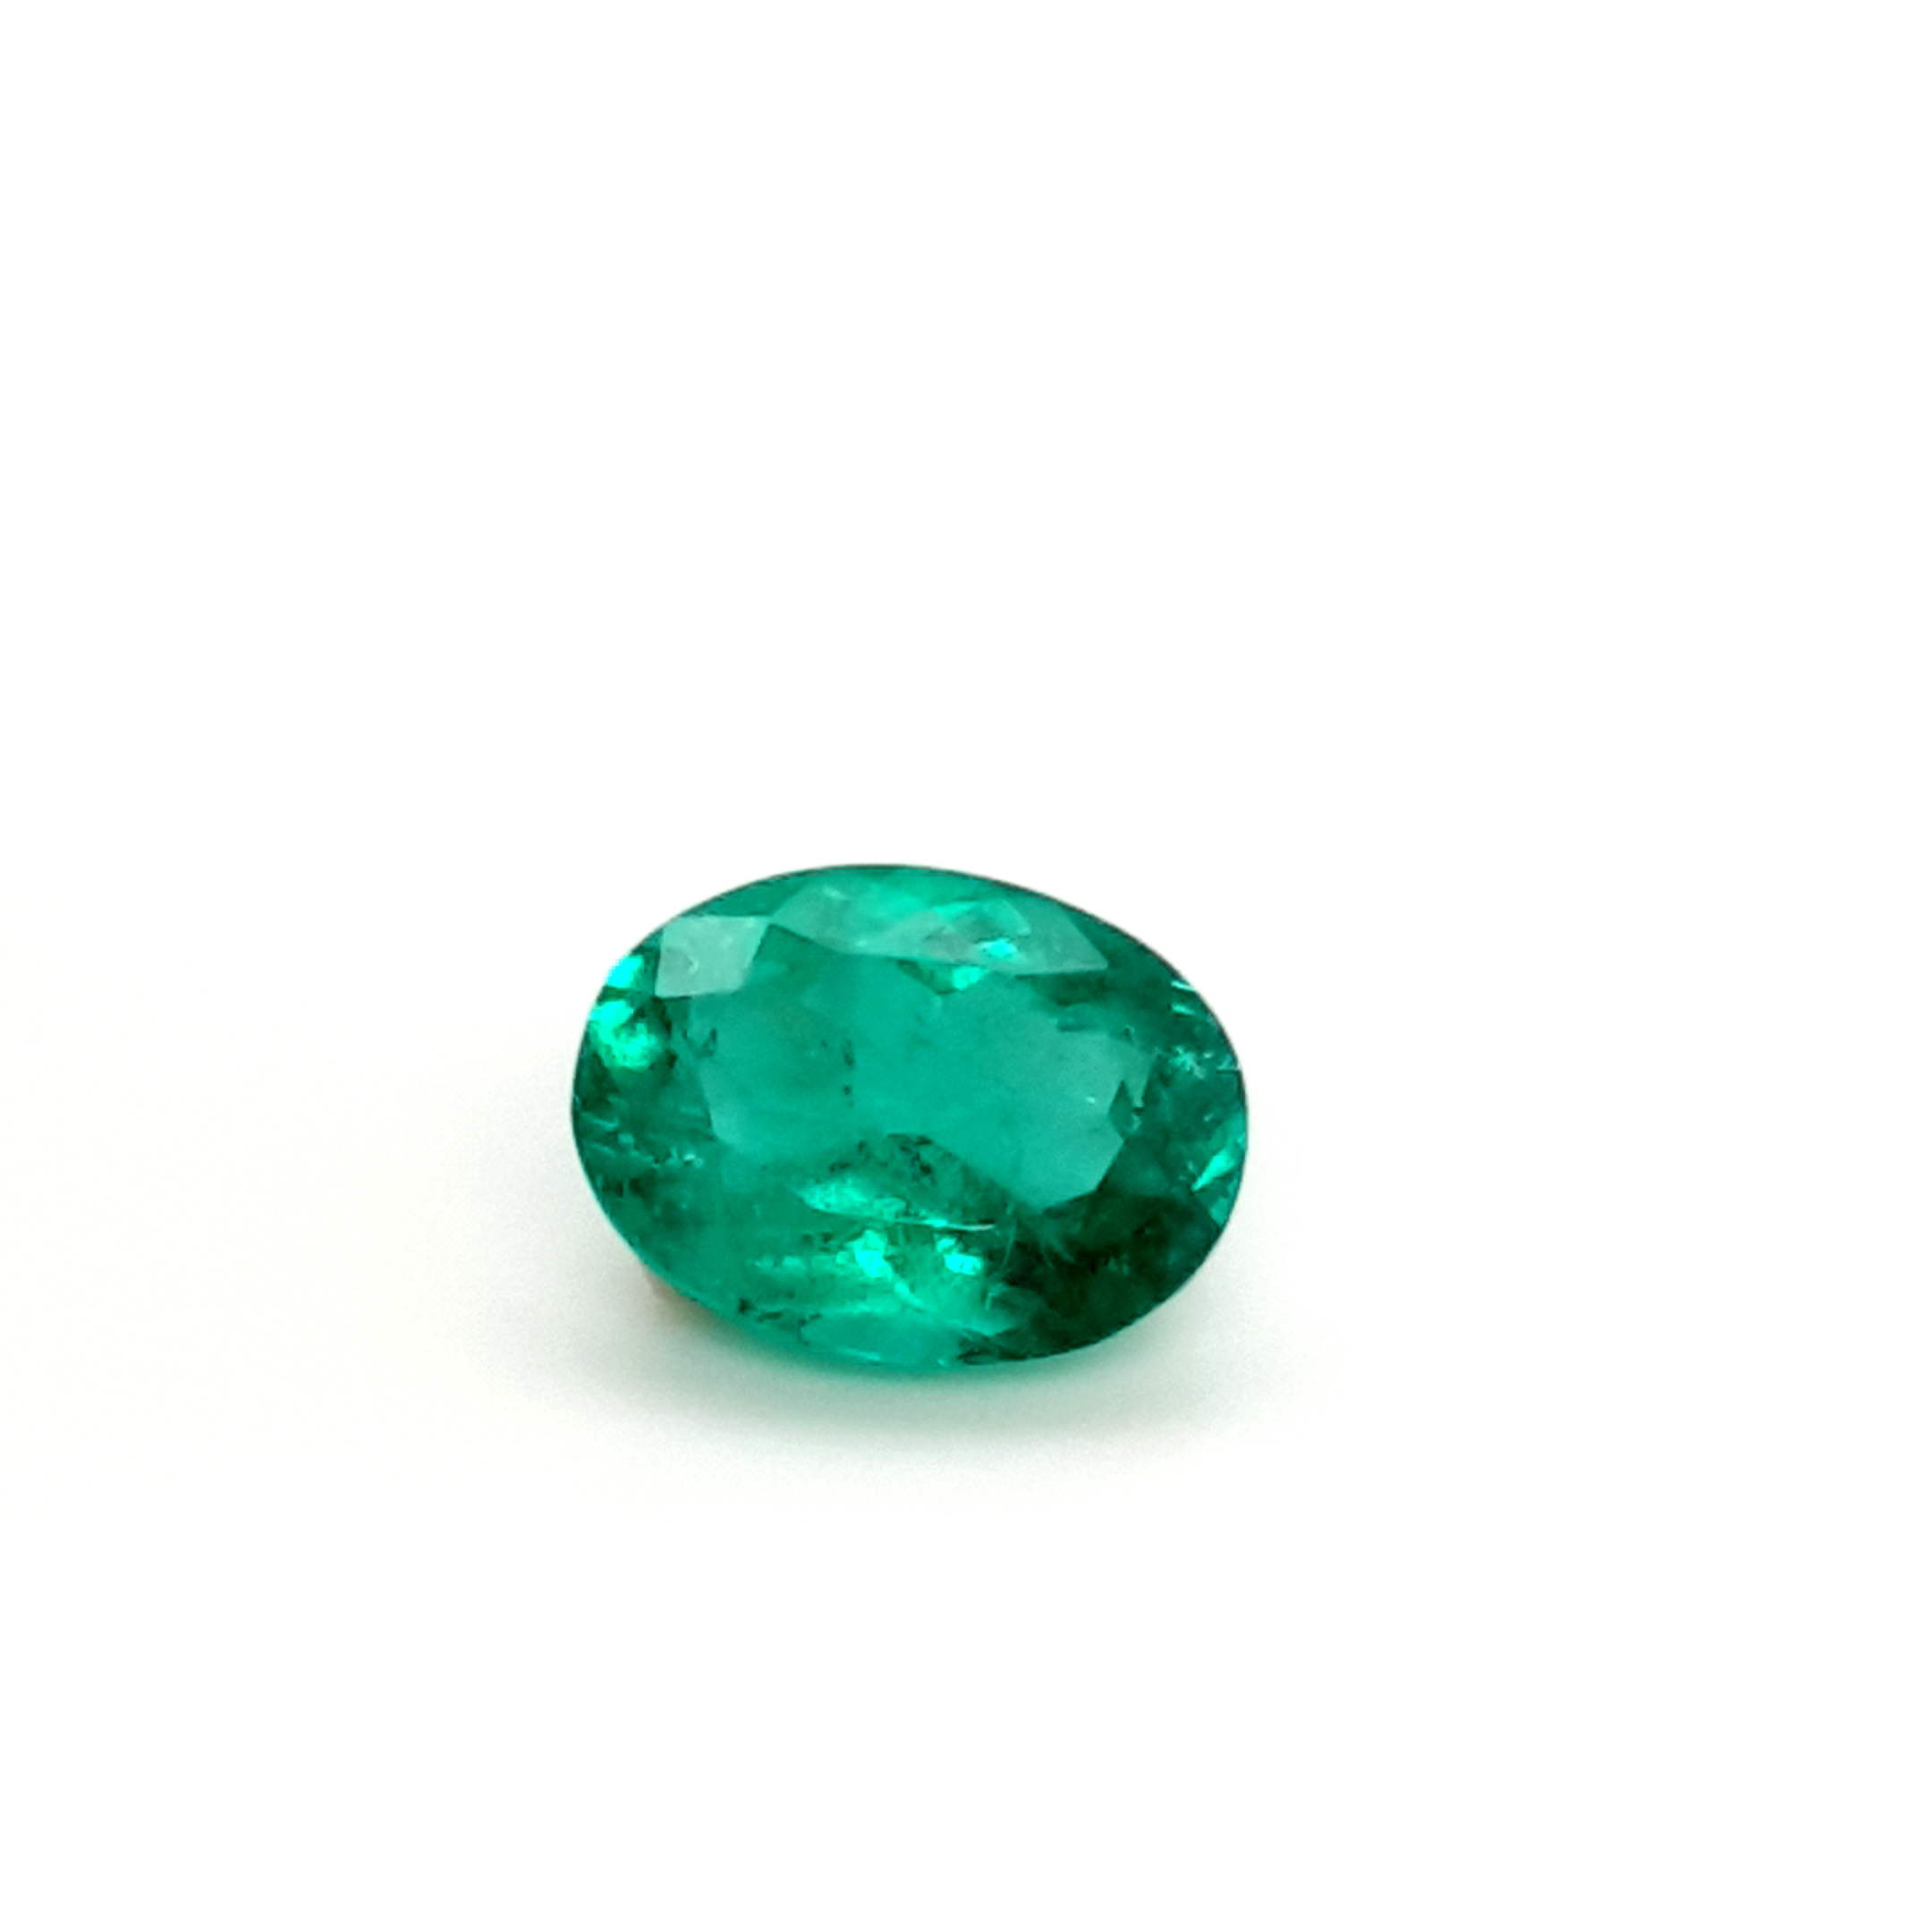 2,91ct. oval Emerald from Colombia EML18D2 ClaudiaHamann __2021-03-25-21-58-40